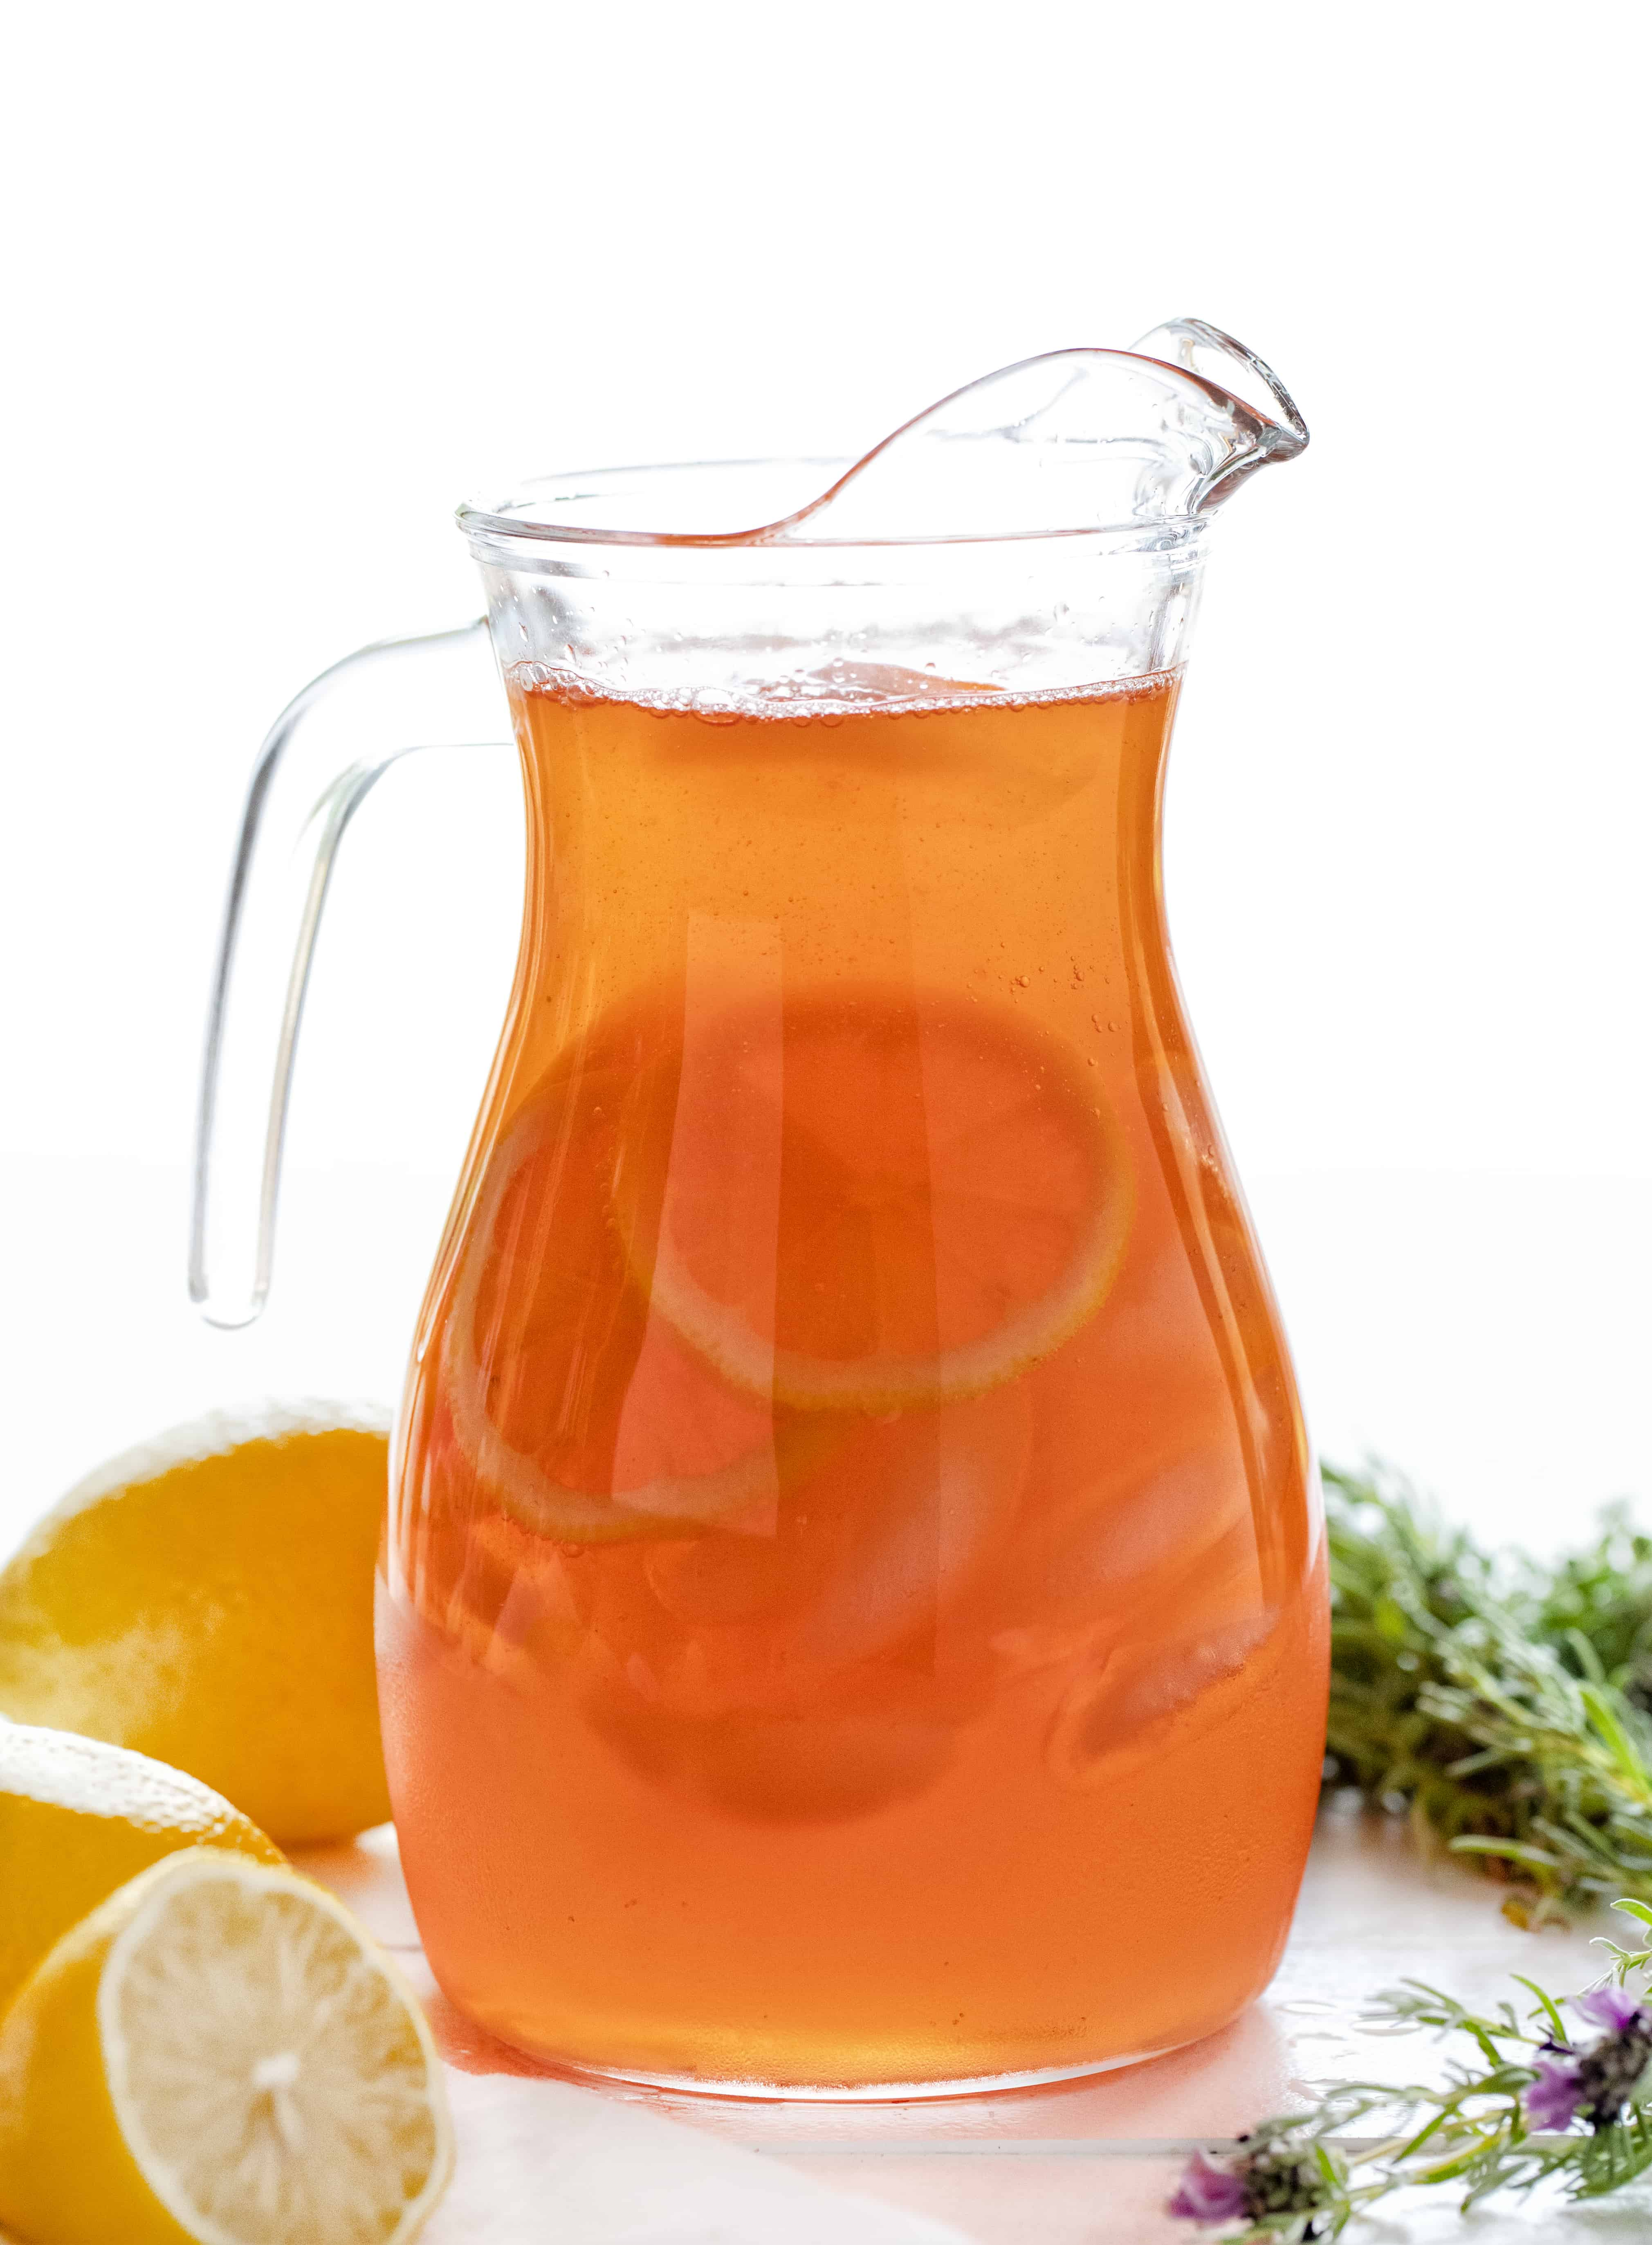 https://iambaker.net/wp-content/uploads/2019/07/straw-lav-lemon.jpg